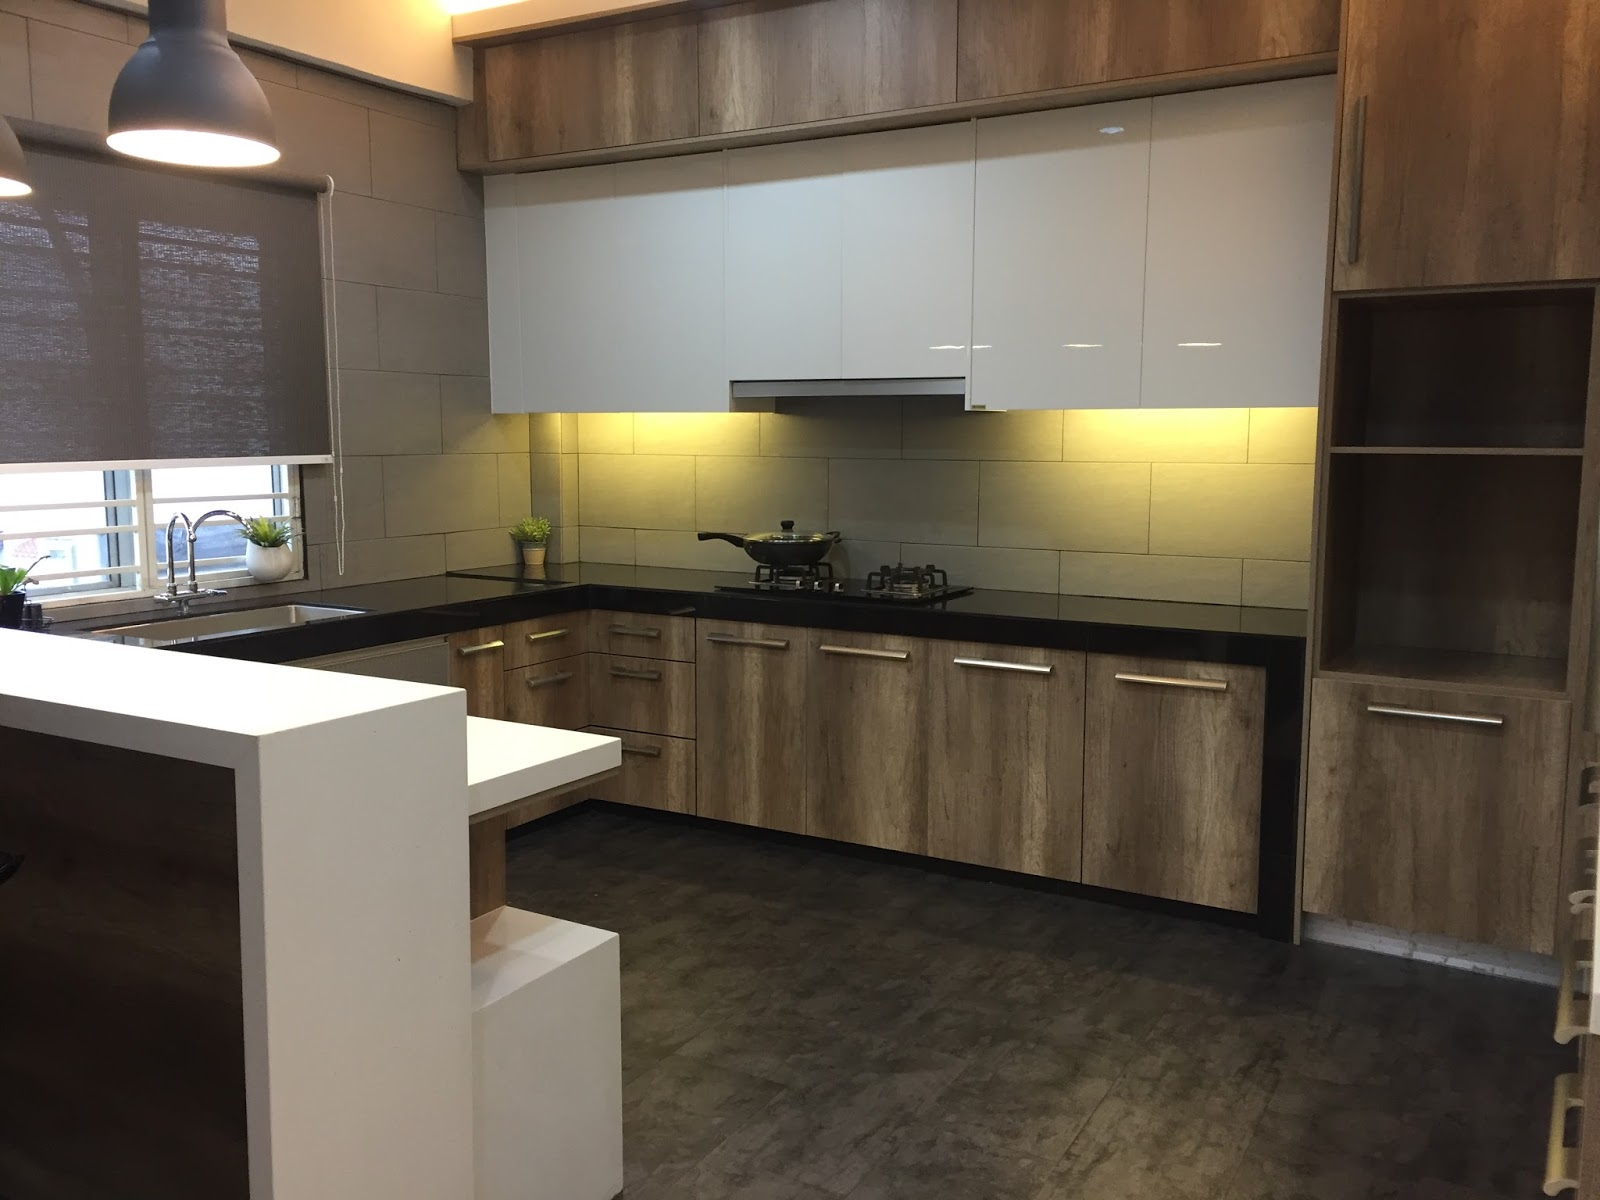 Rumah Pajam : Kabinet Dapur Intech Kitchen.